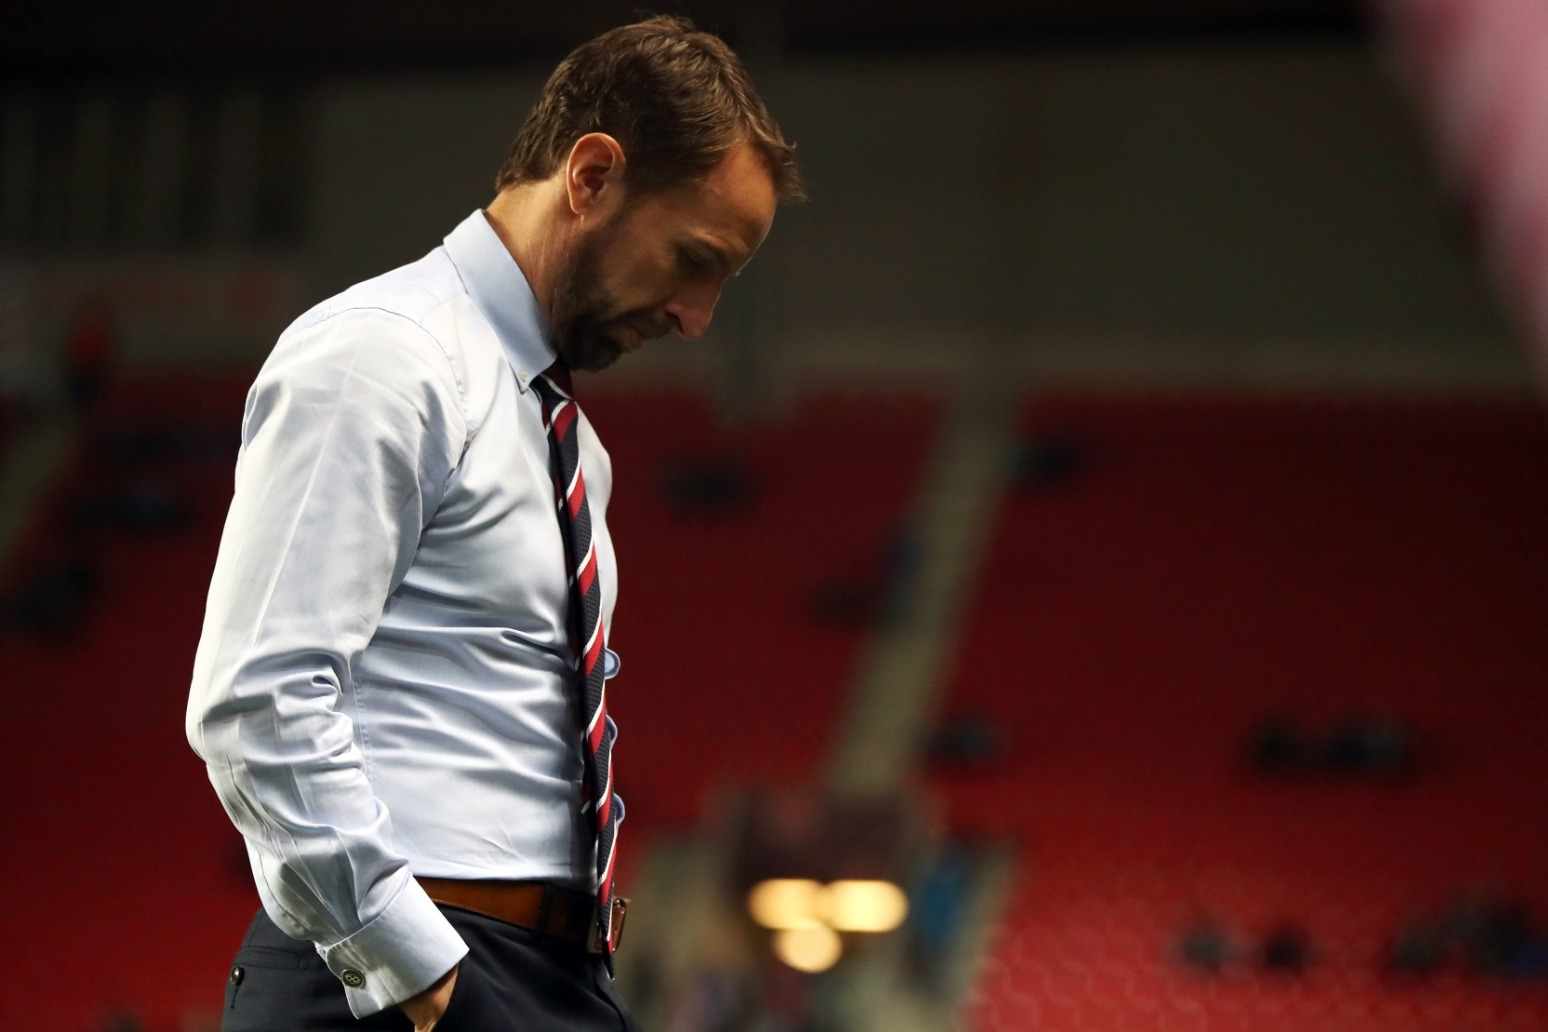 ENGLAND SLIP TO FIRST QUALIFYING DEFEAT IN 10 YEARS